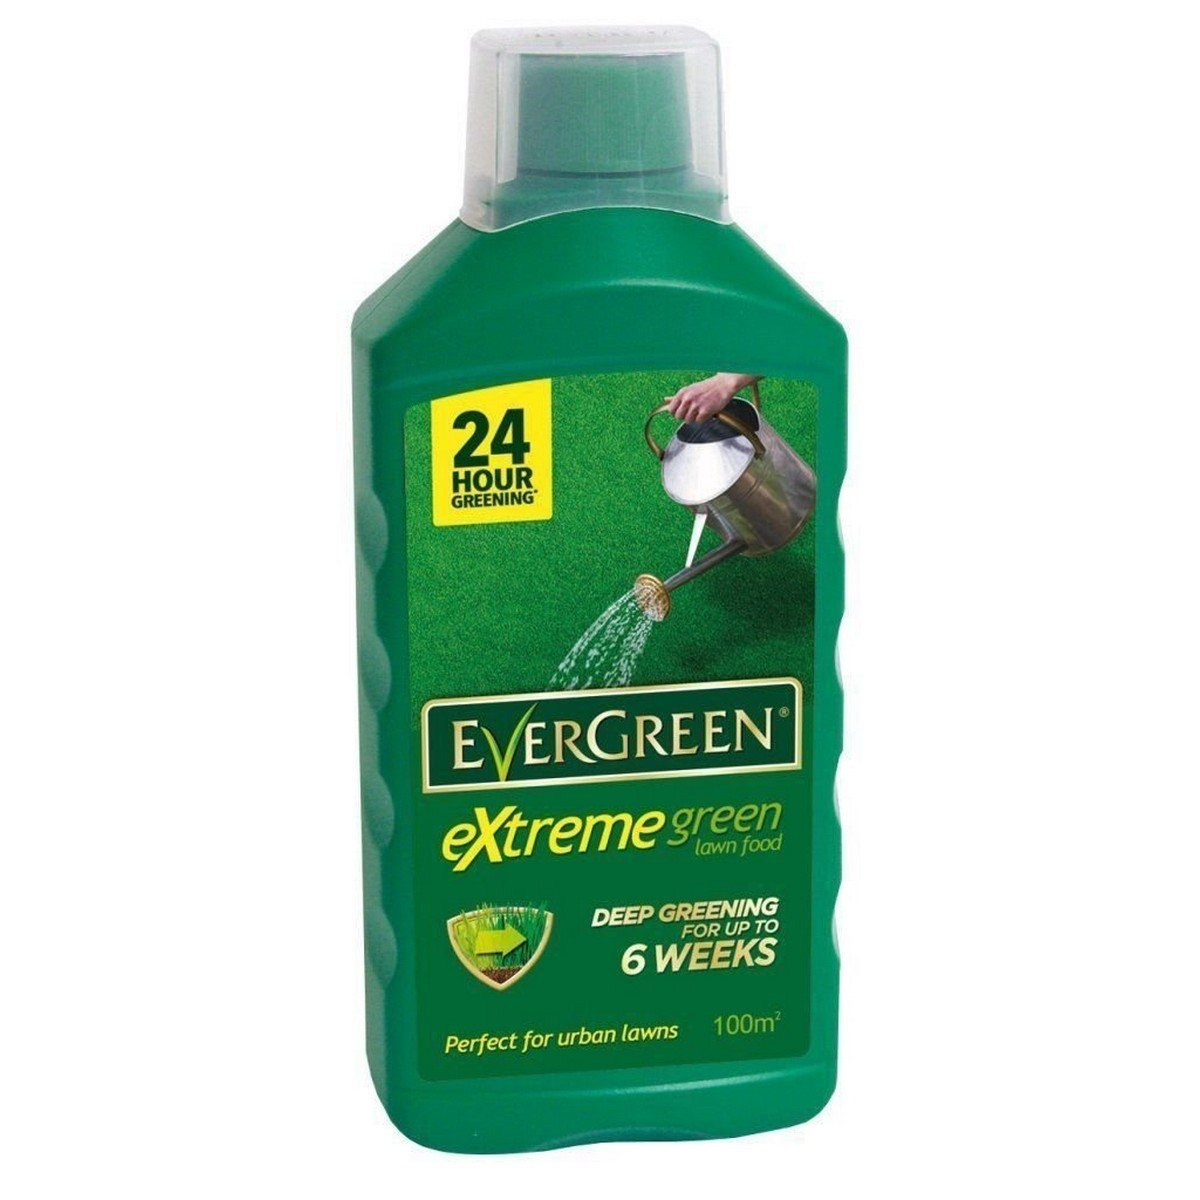 Evergreen Extreme Green Lawn Food 1L by Scotts